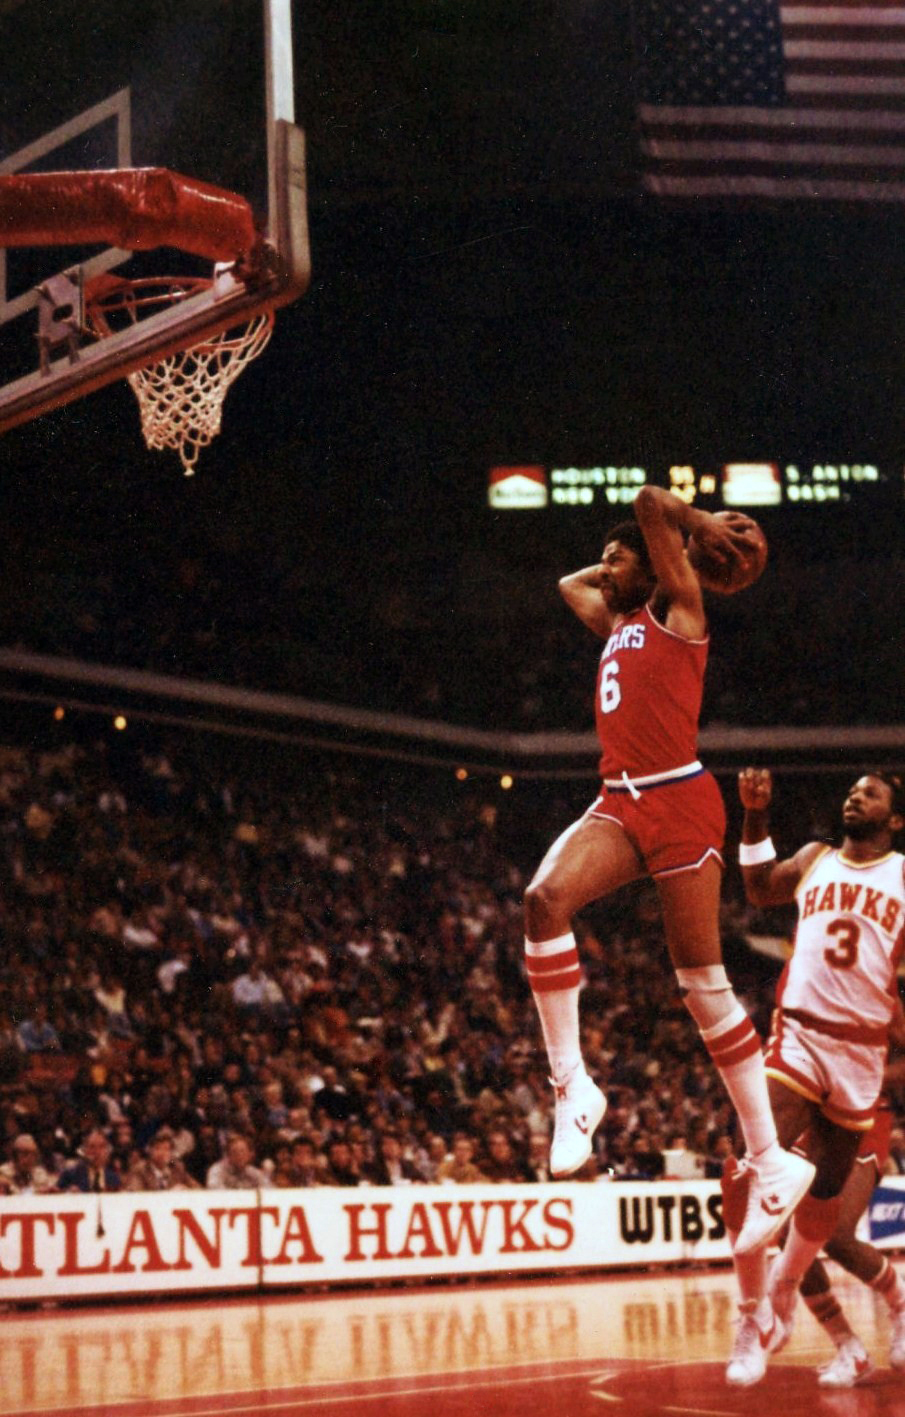 Julius Erving in 1981 performing a slam dunk. (Jim Accordino at http://www.flickr.com/photos/jimmyack205/)